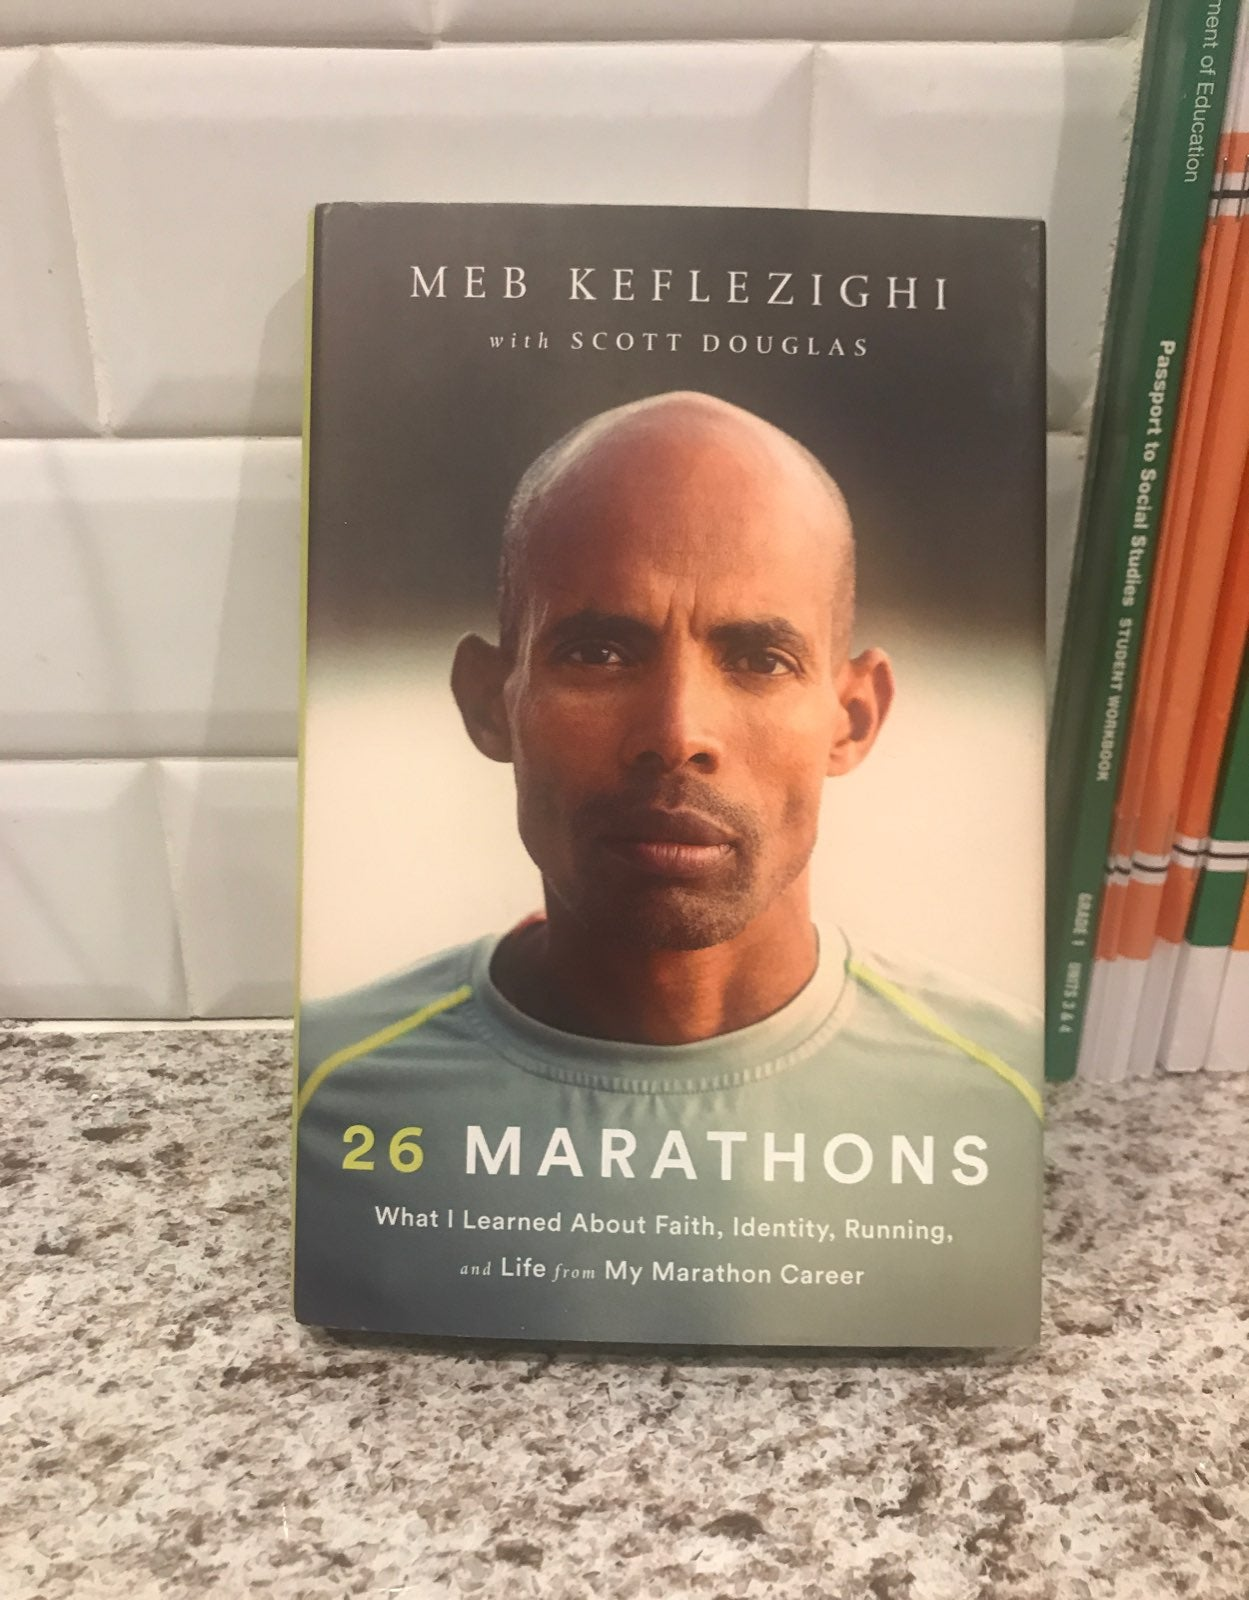 26 Marathons, by Meb Keflezighi SIGNED!